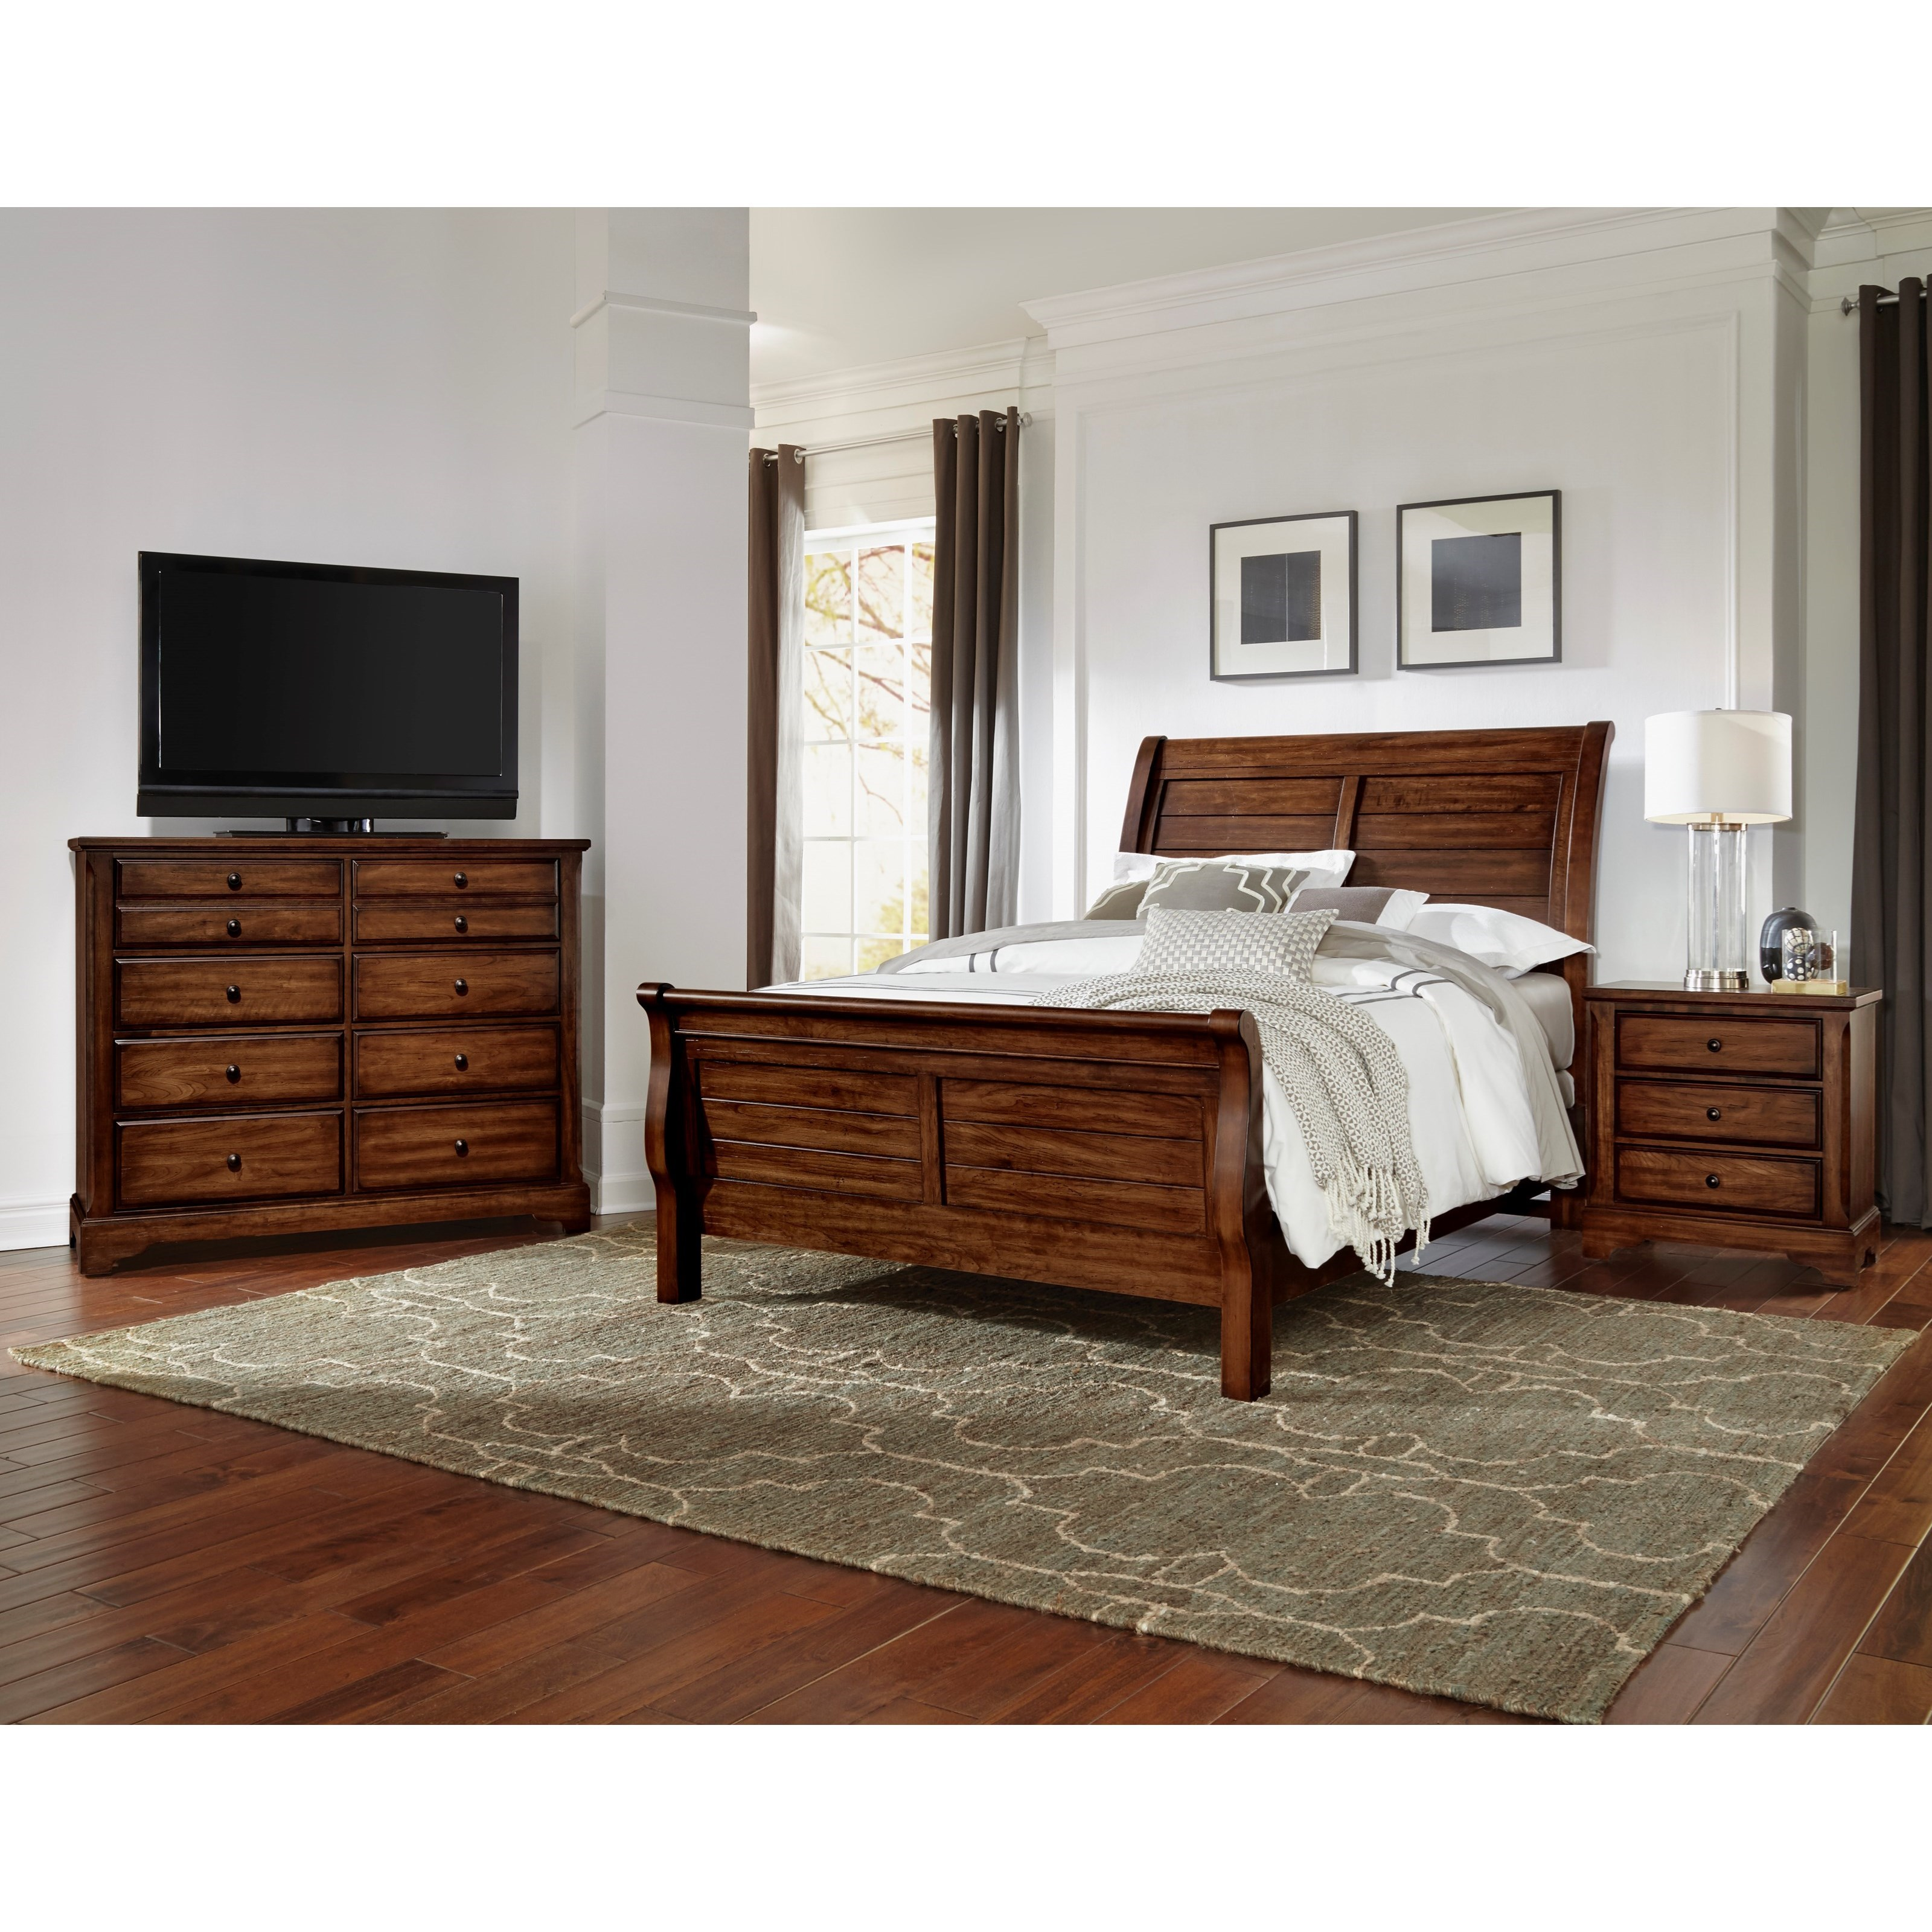 Artisan Choices Queen Bedroom Group by Artisan & Post at Northeast Factory Direct